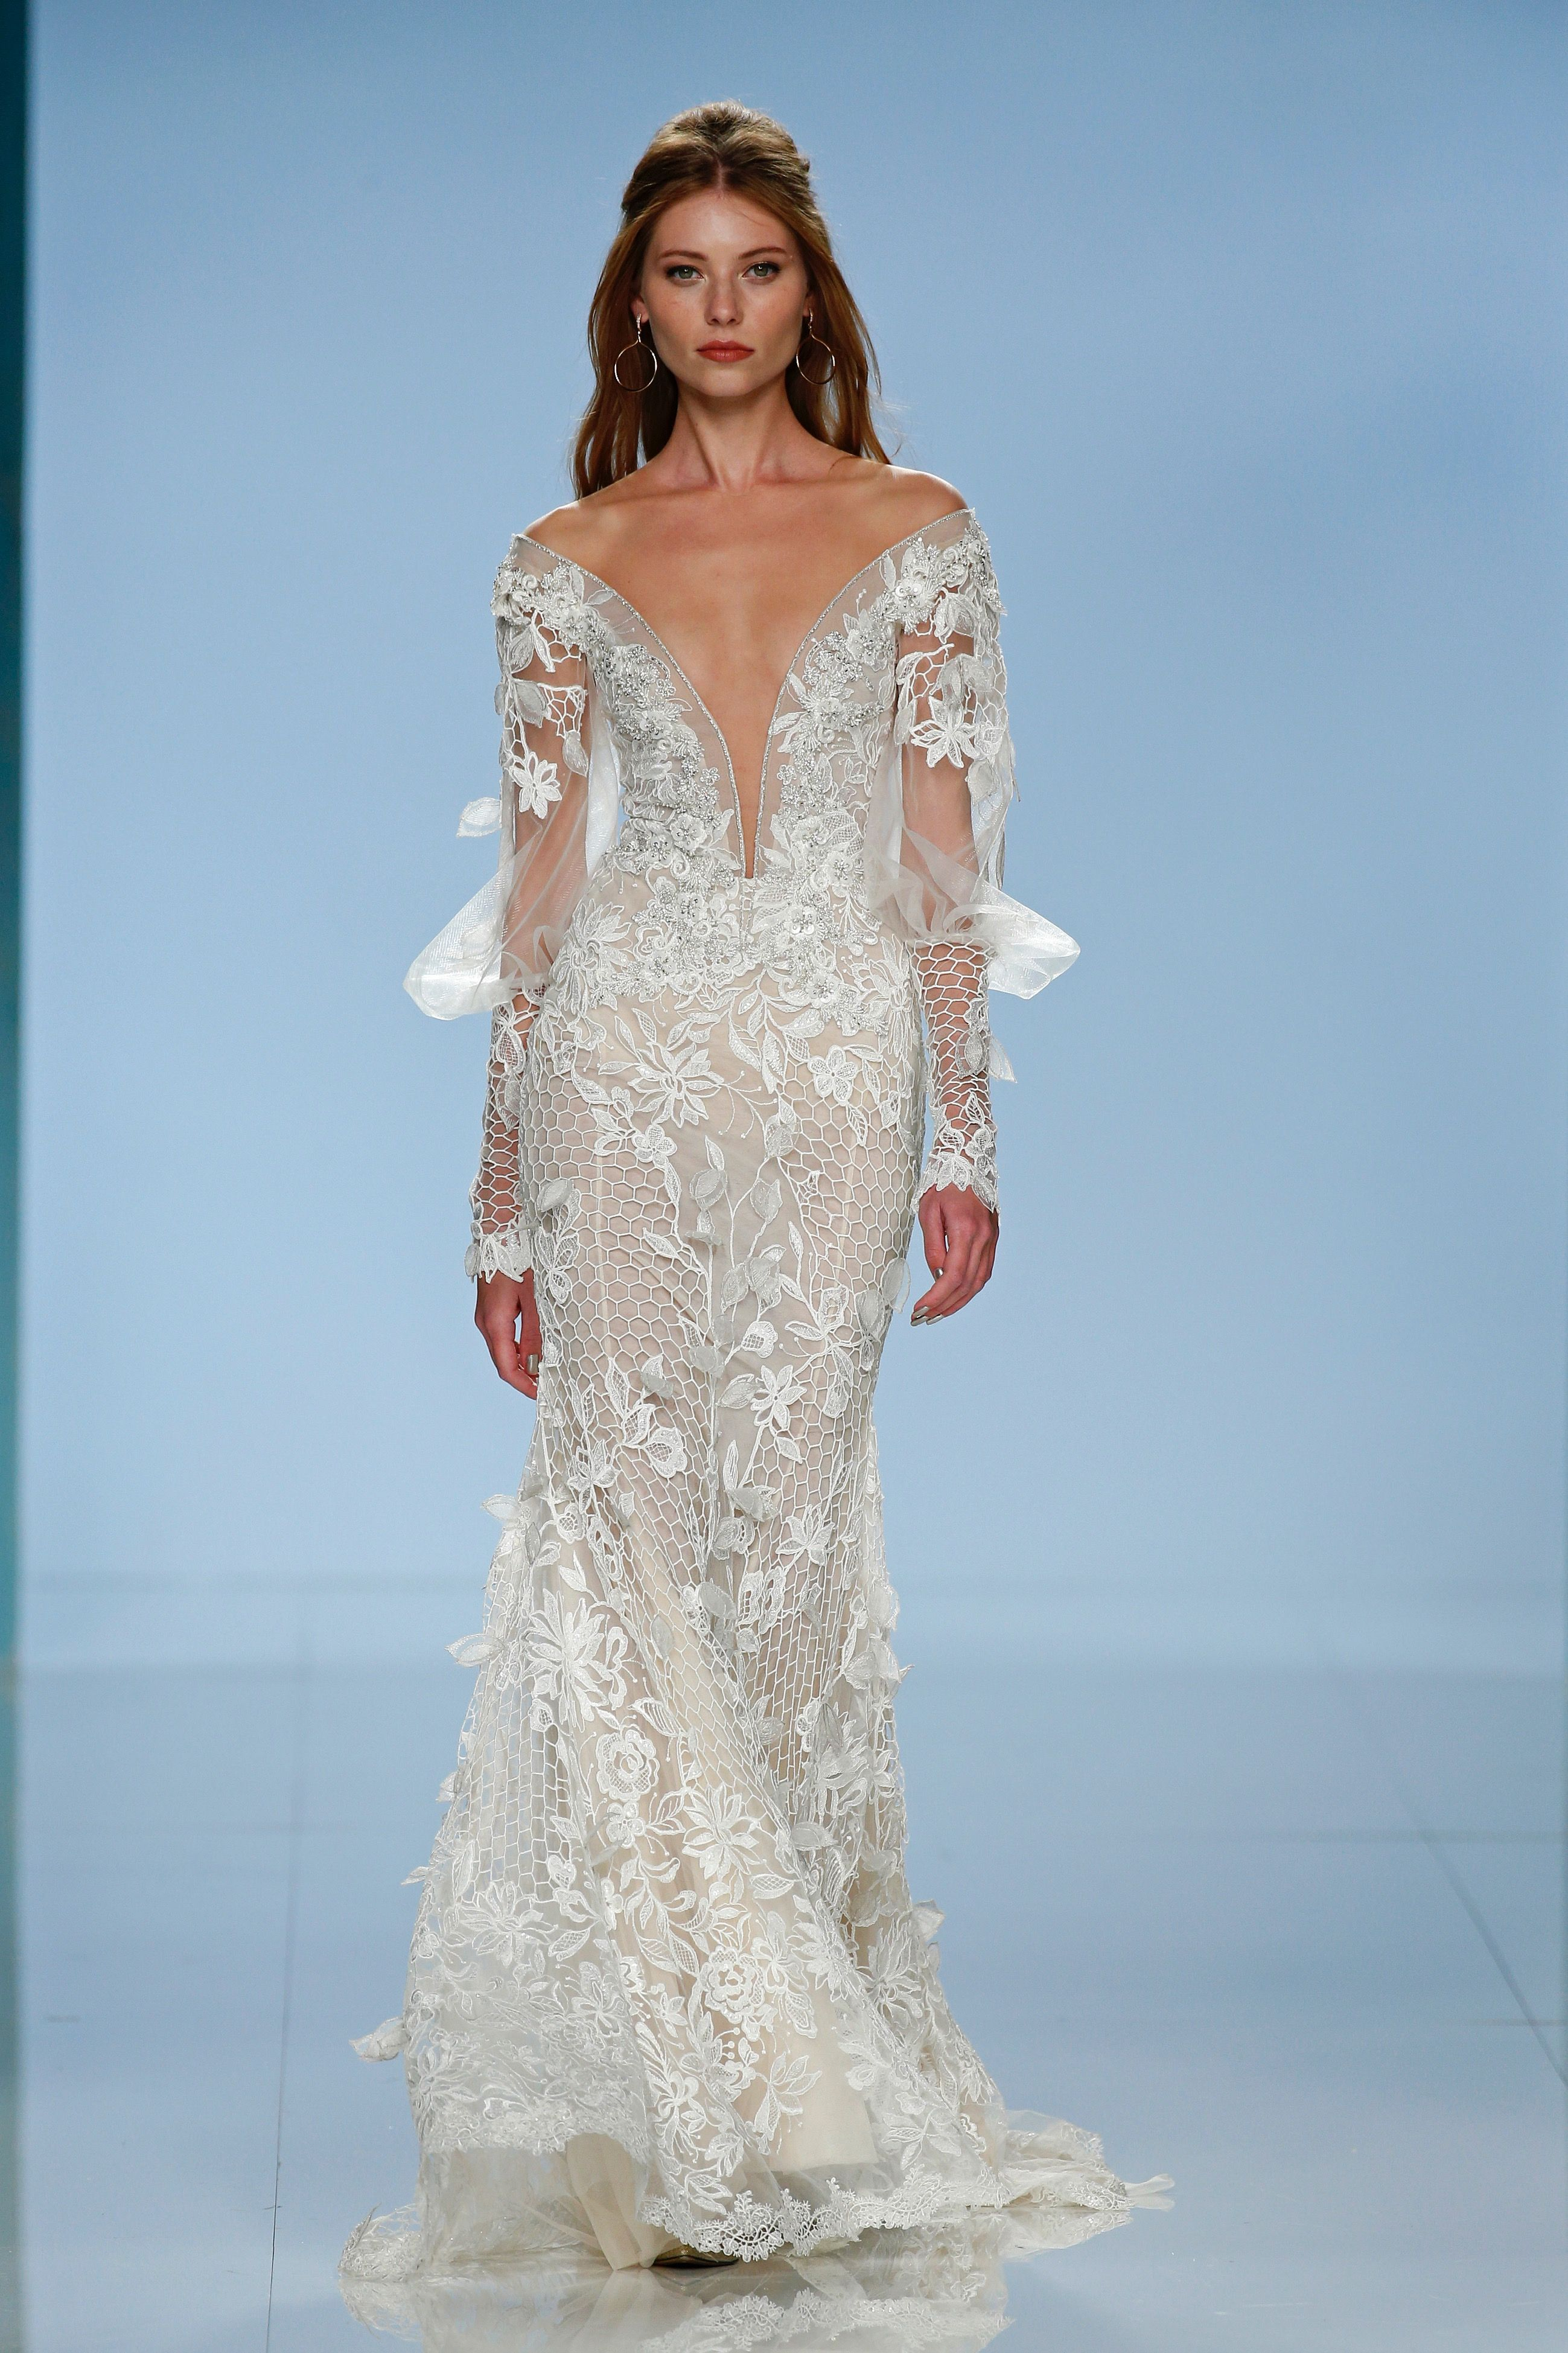 The Top 5 Israeli Wedding Dress Designers You Need To Know – The Forward